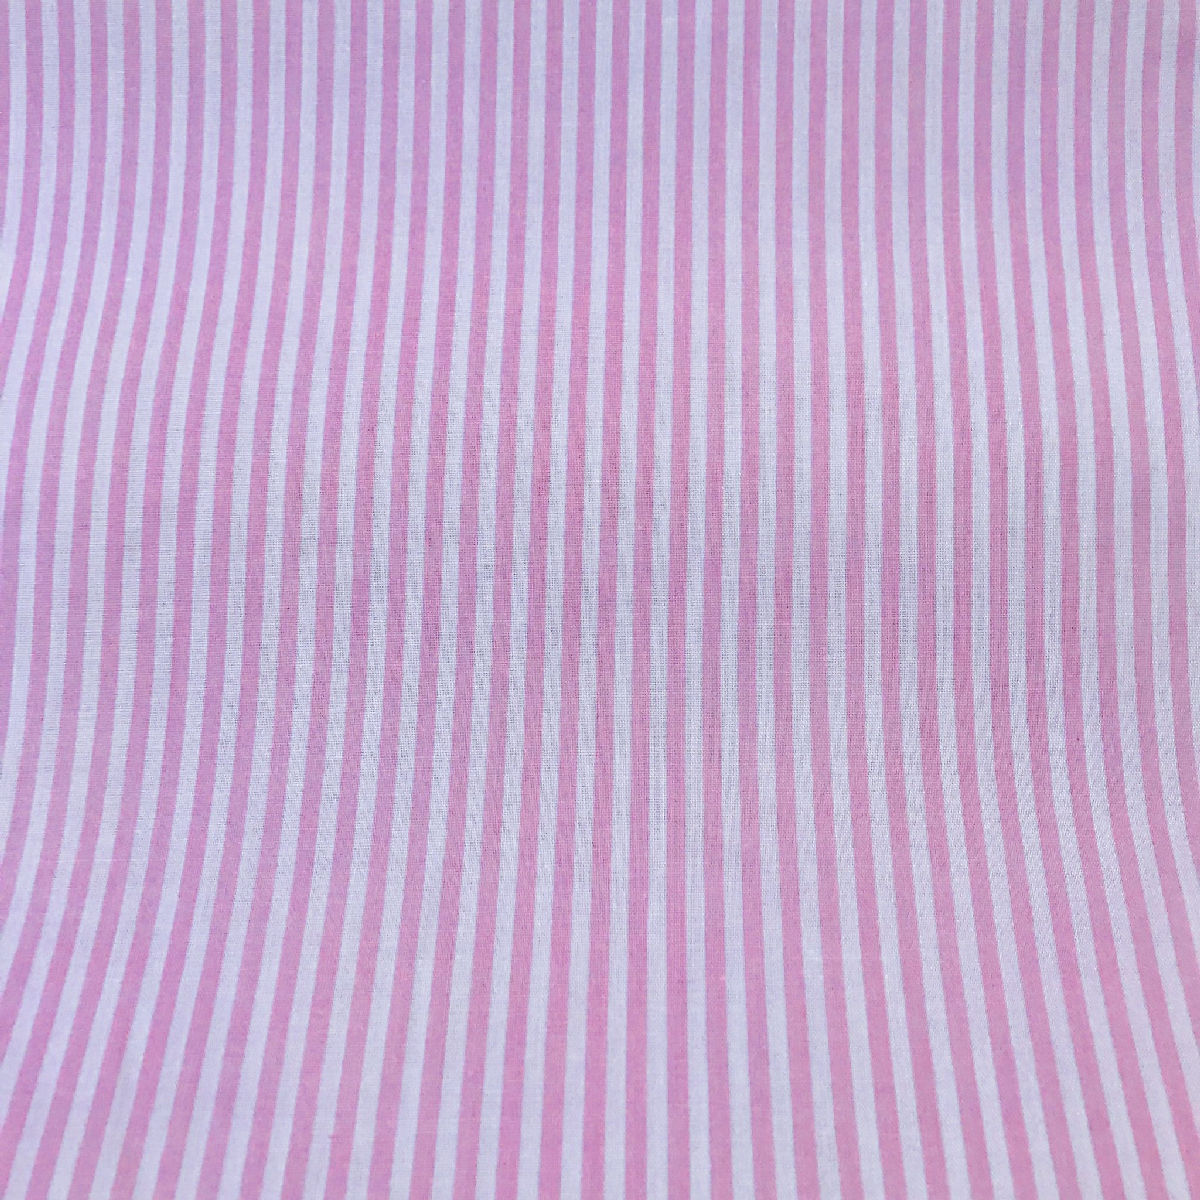 Printed Polyester Cotton Stripes Pink